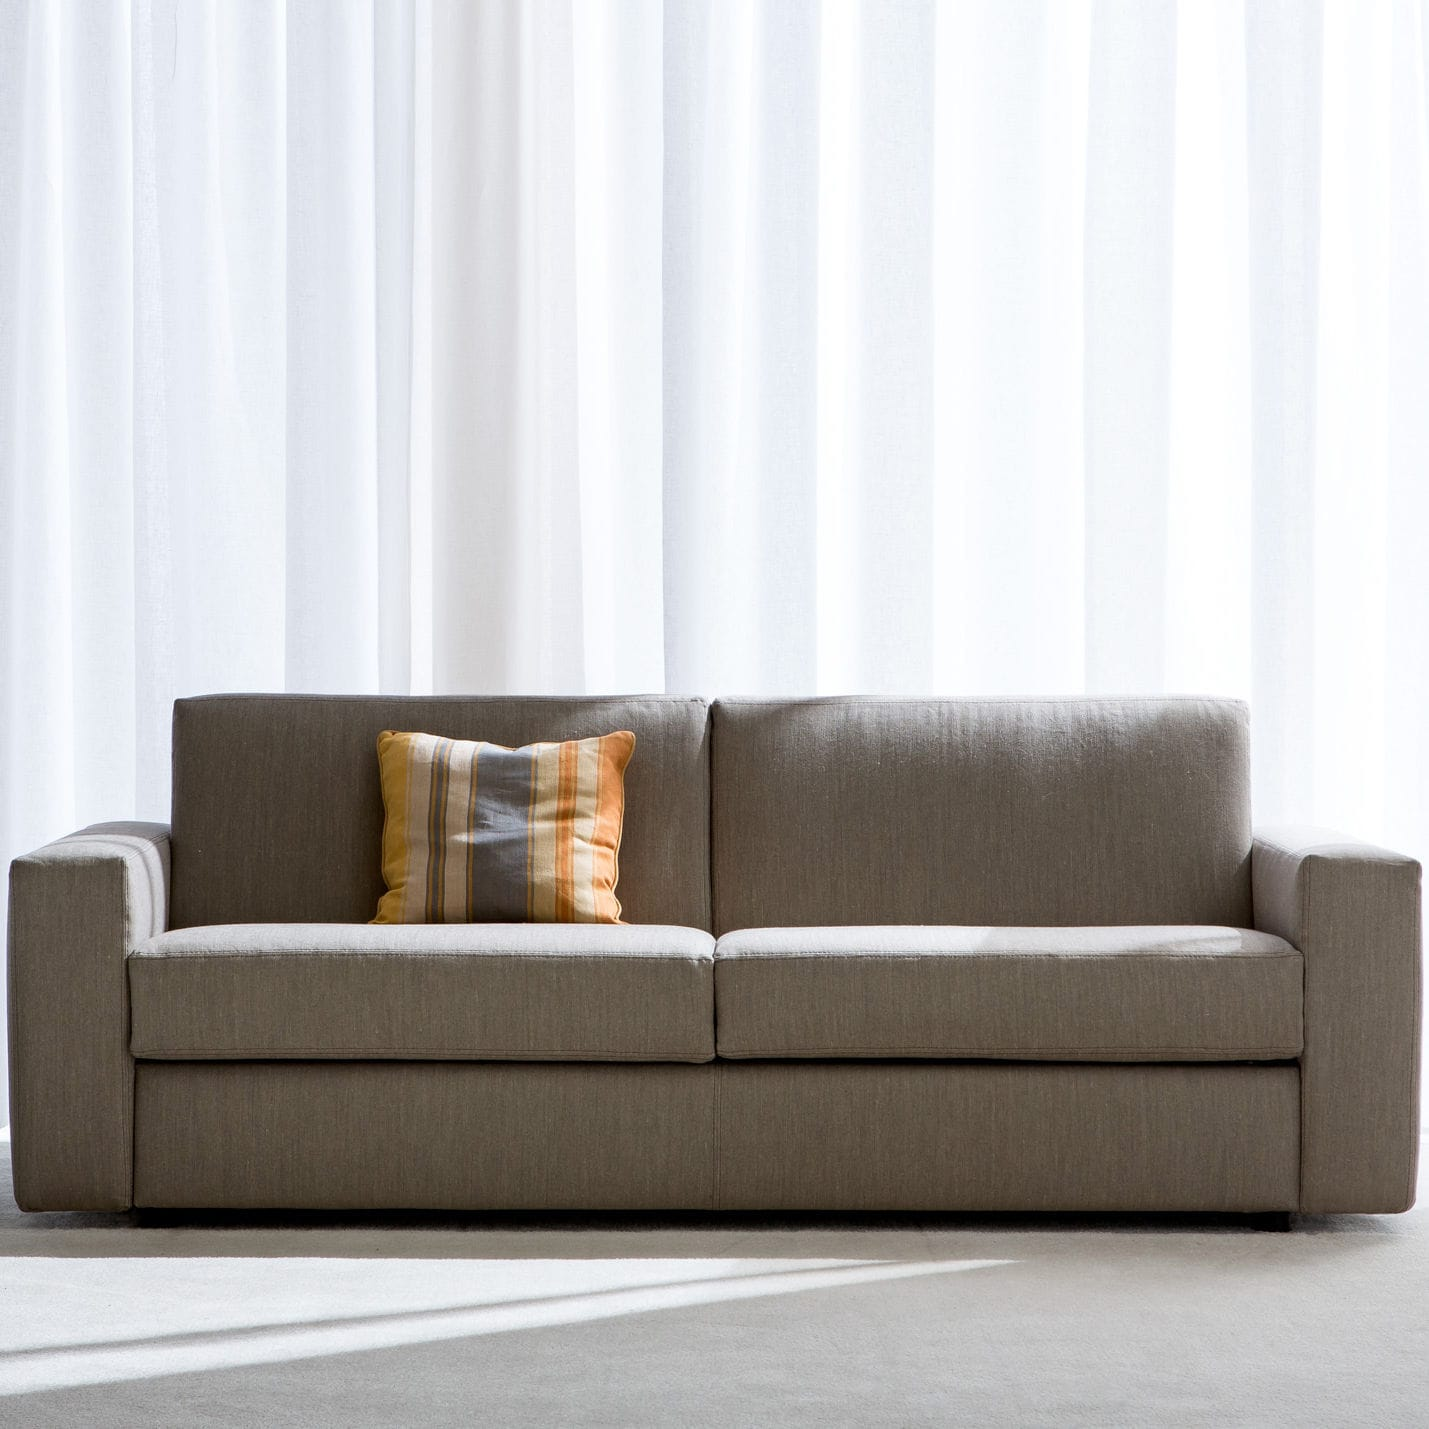 Beau Sofa Bed / Contemporary / Fabric / Leather   SAN DIEGO CITY